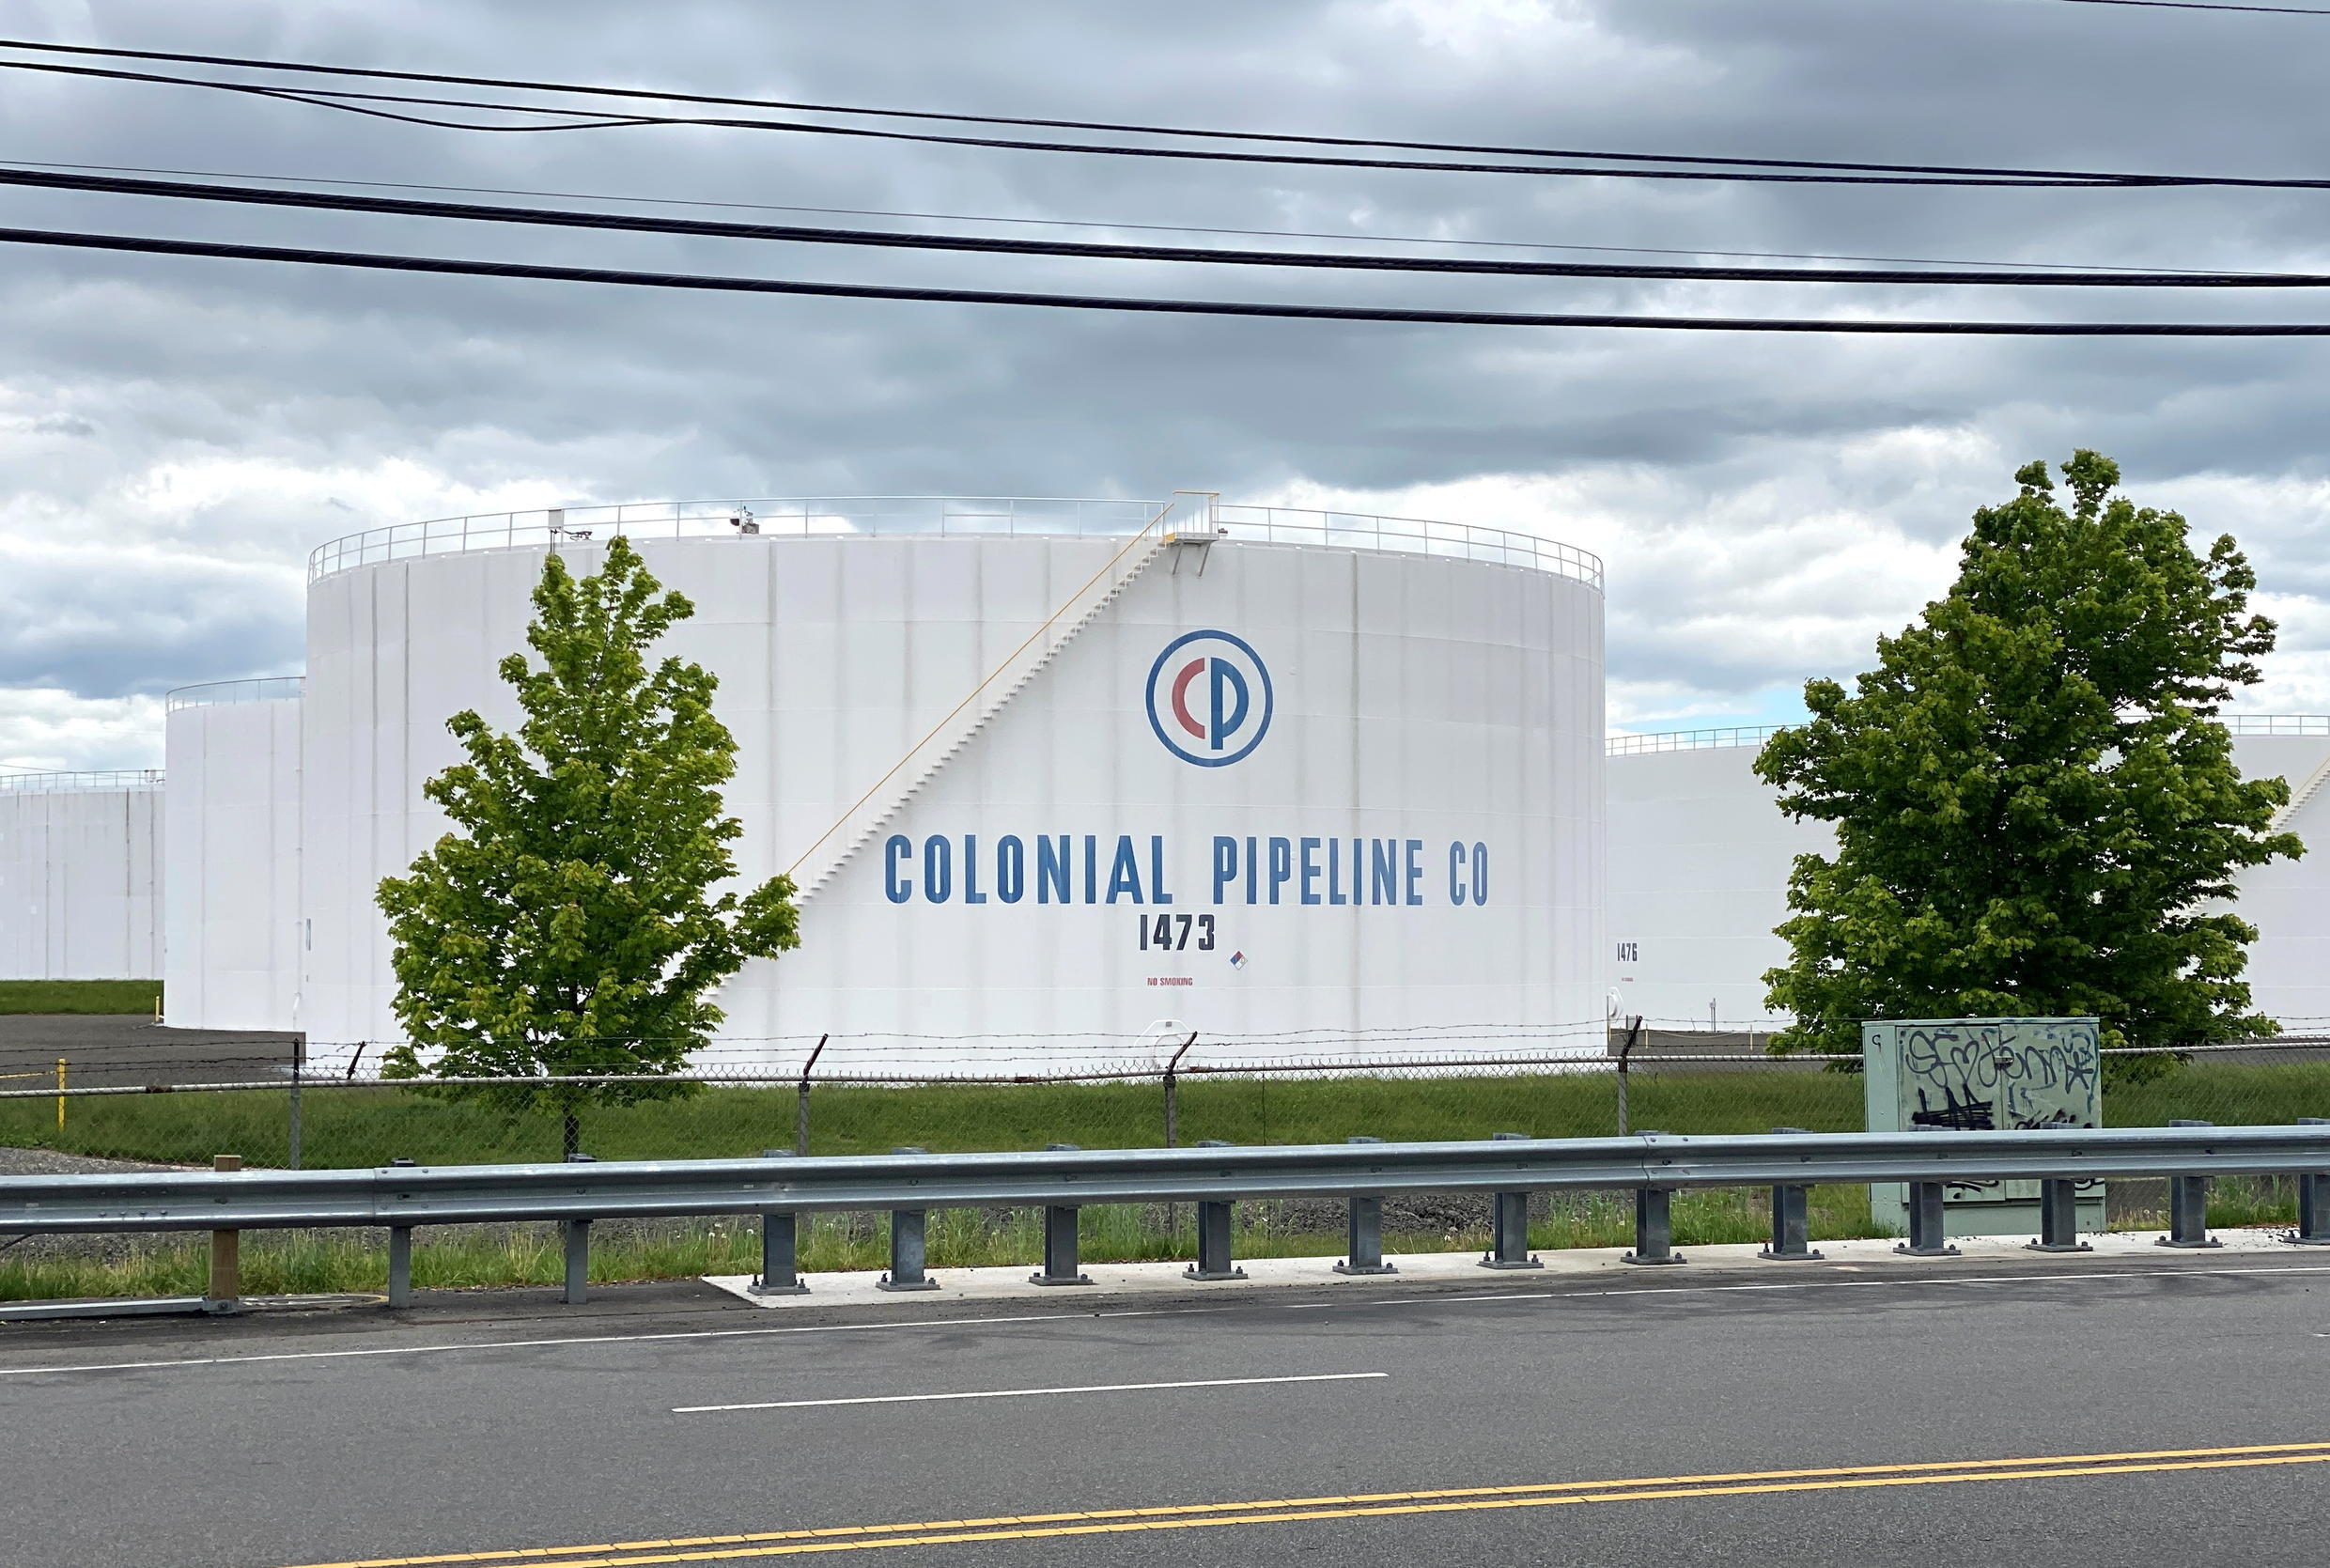 2021-05-18T160850Z_2045517511_RC2GIN9ILR7O_RTRMADP_3_USA-PRODUCTS-COLONIALPIPELINE